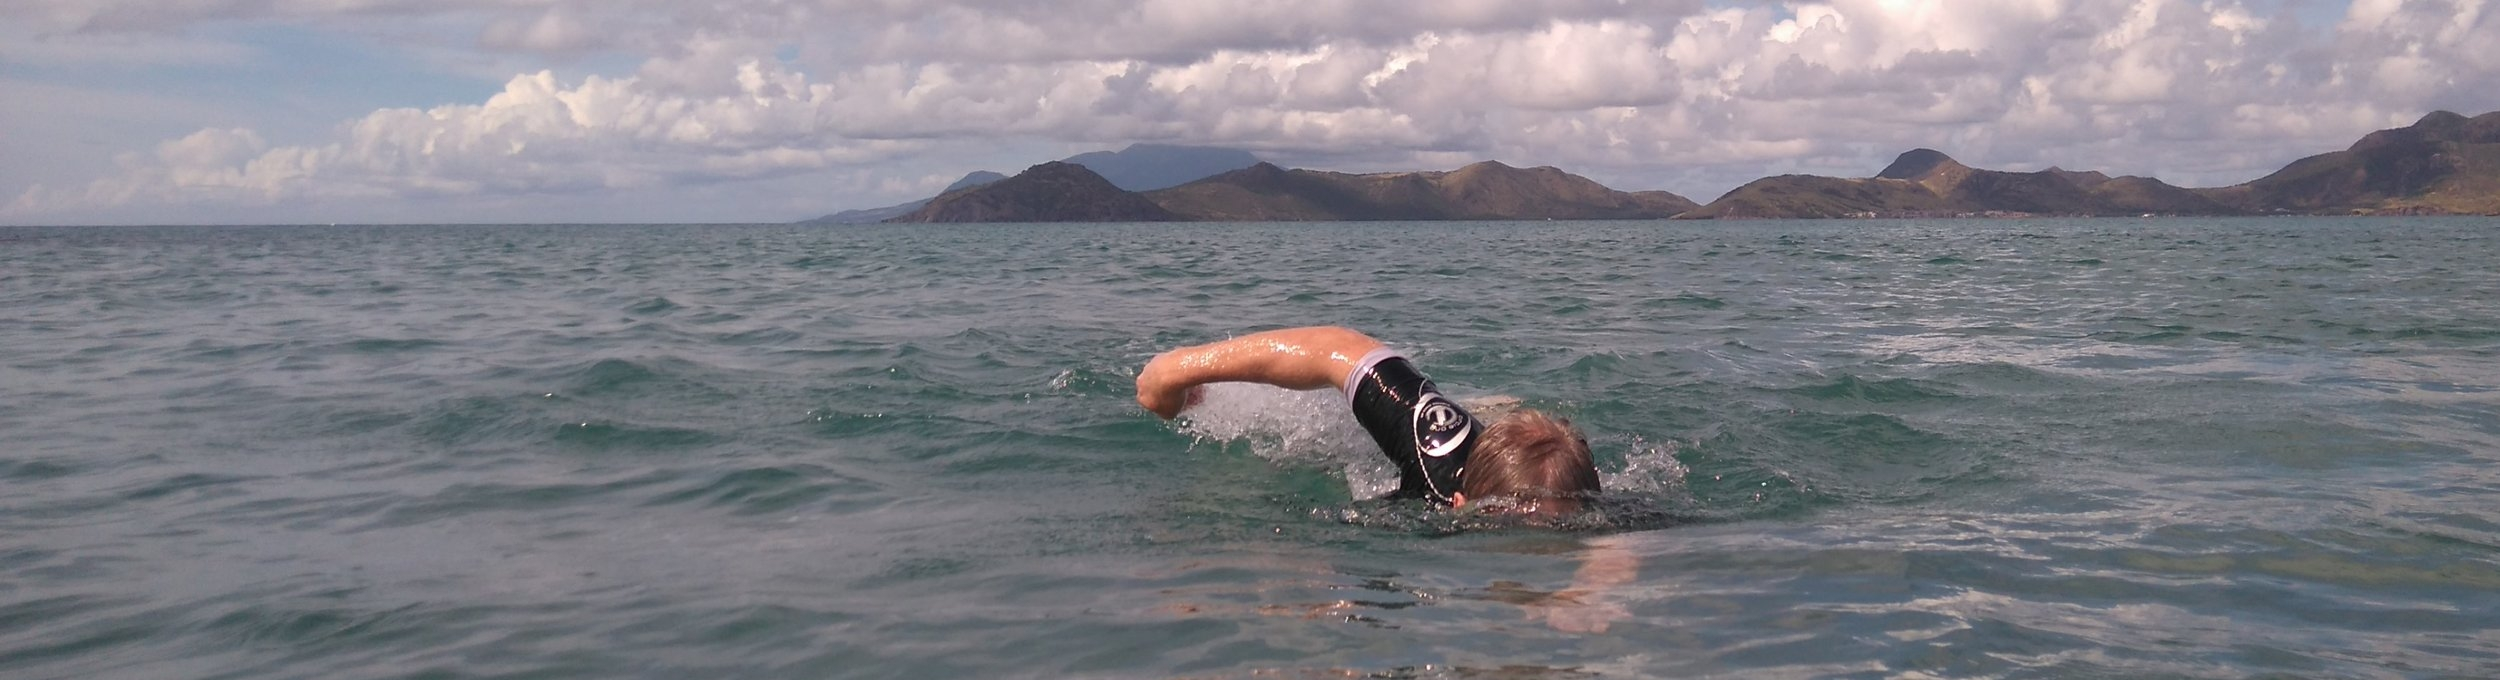 swimming the Narrows between Nevis and St Kitts